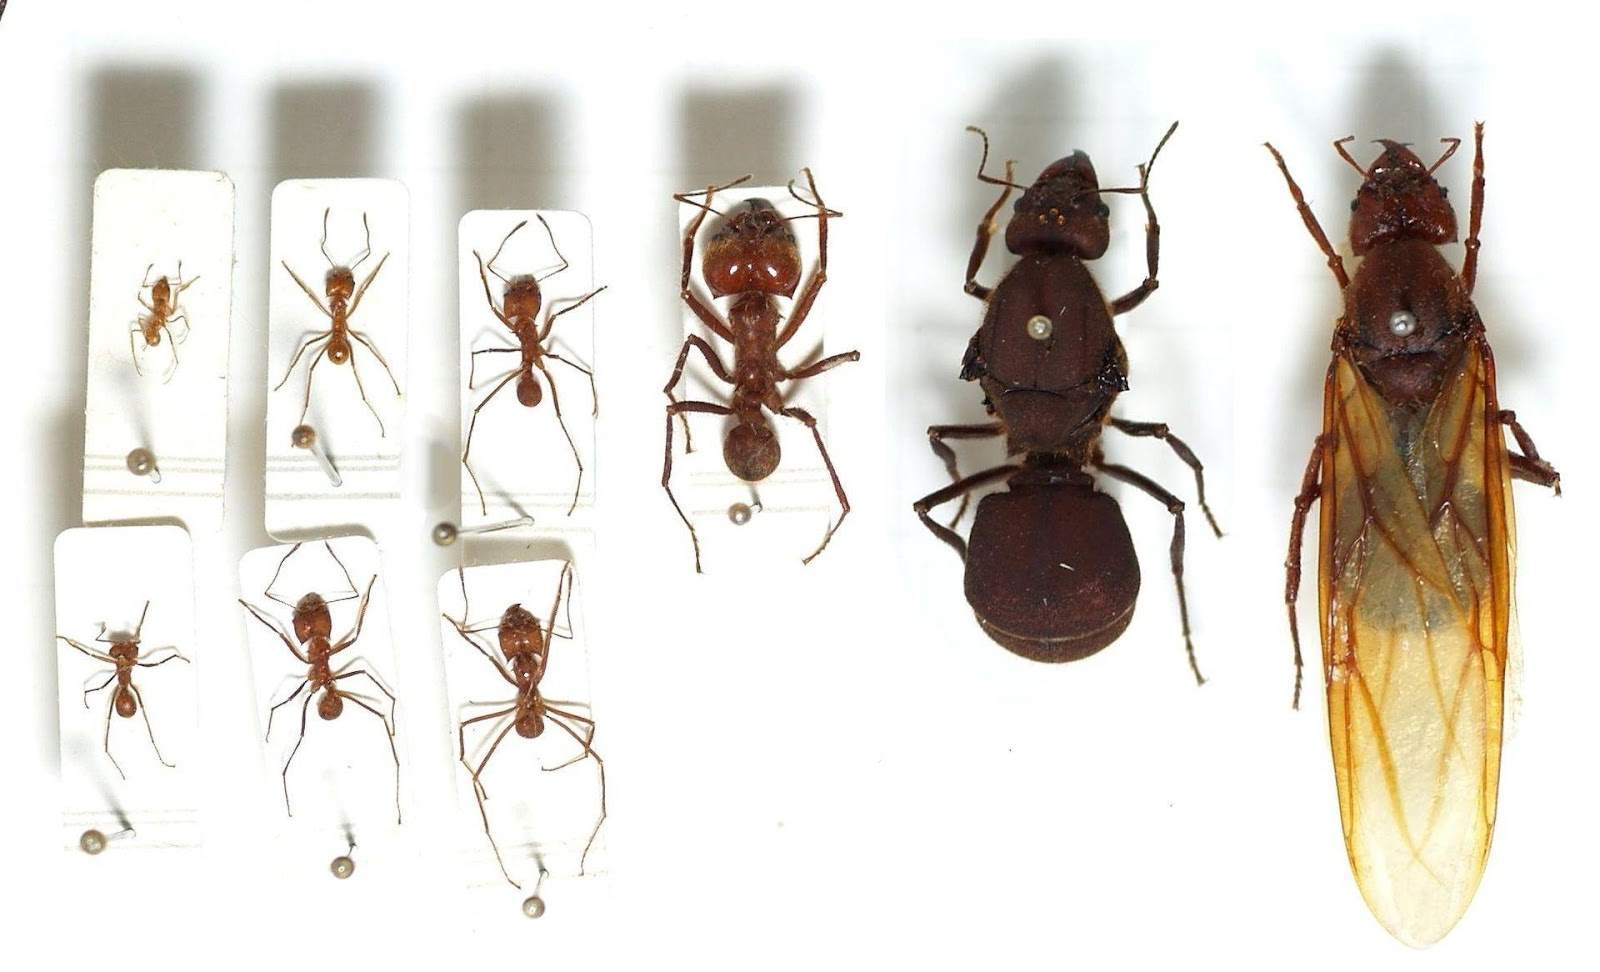 https://upload.wikimedia.org/wikipedia/commons/thumb/7/7d/Atta.cephalotes.gamut.selection.jpg/1920px-Atta.cephalotes.gamut.selection.jpg